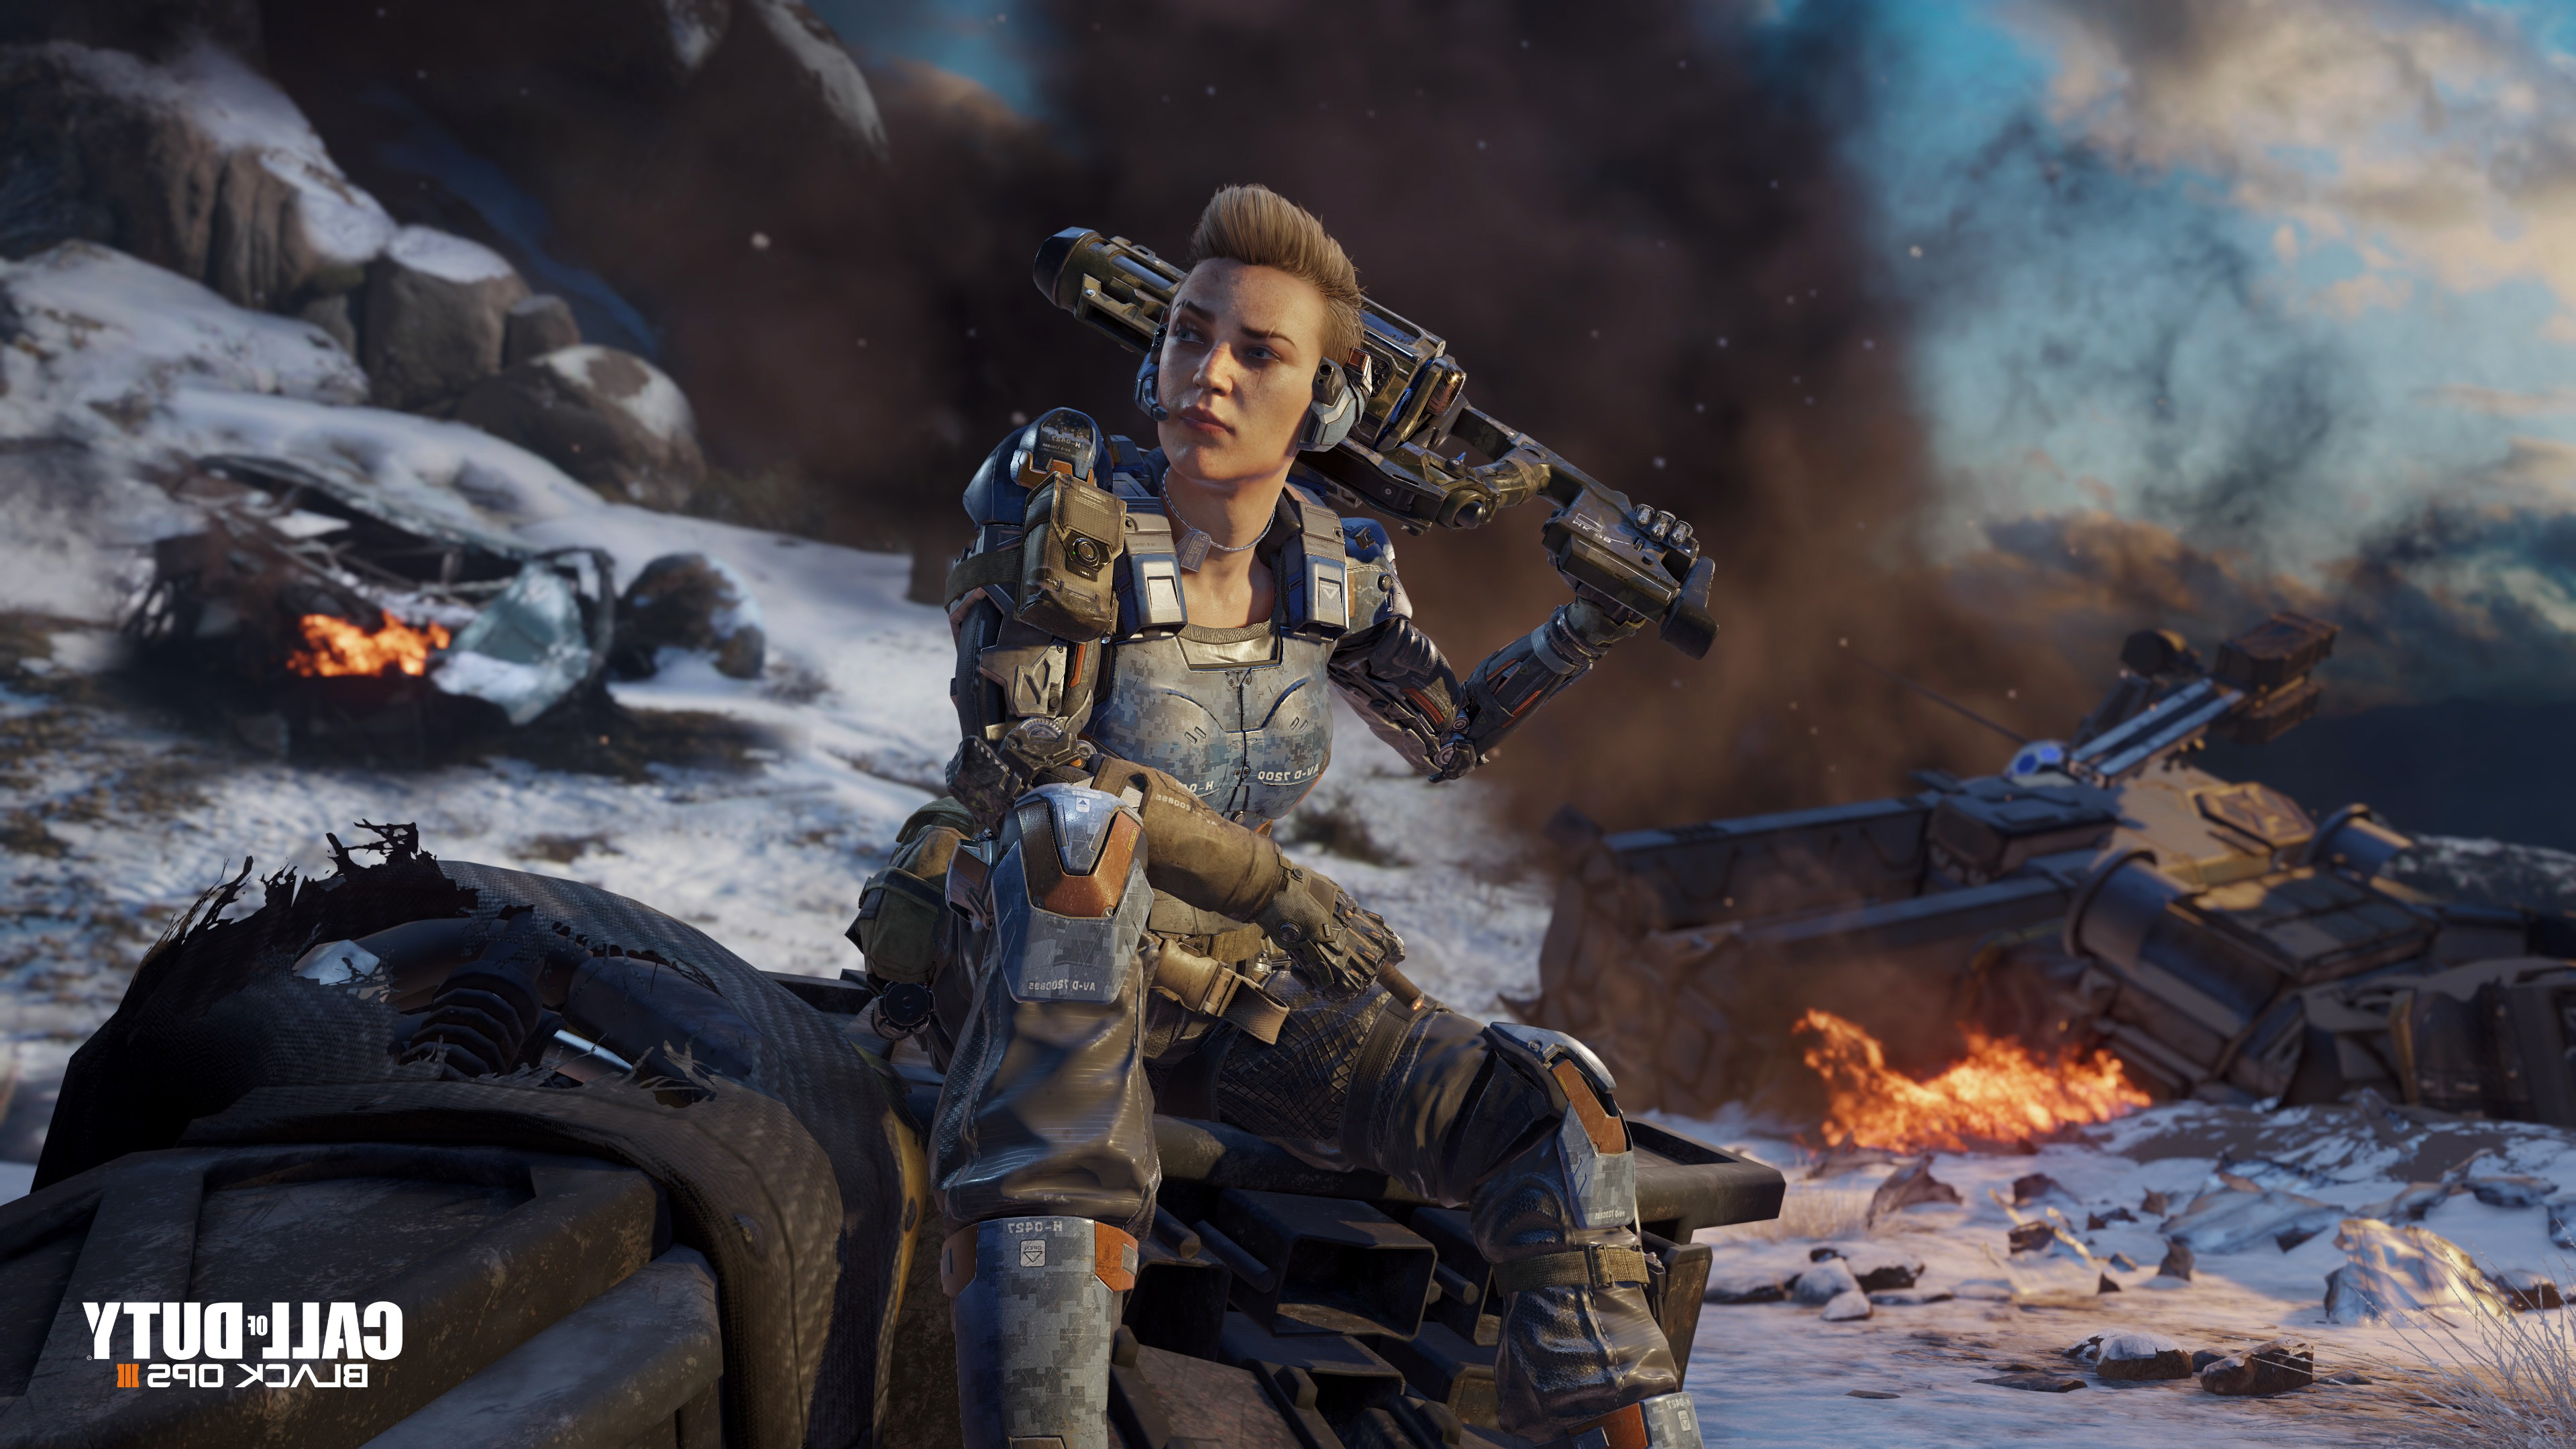 Call Of Duty Black Ops 3 Game Hd Games 4k Wallpapers Images